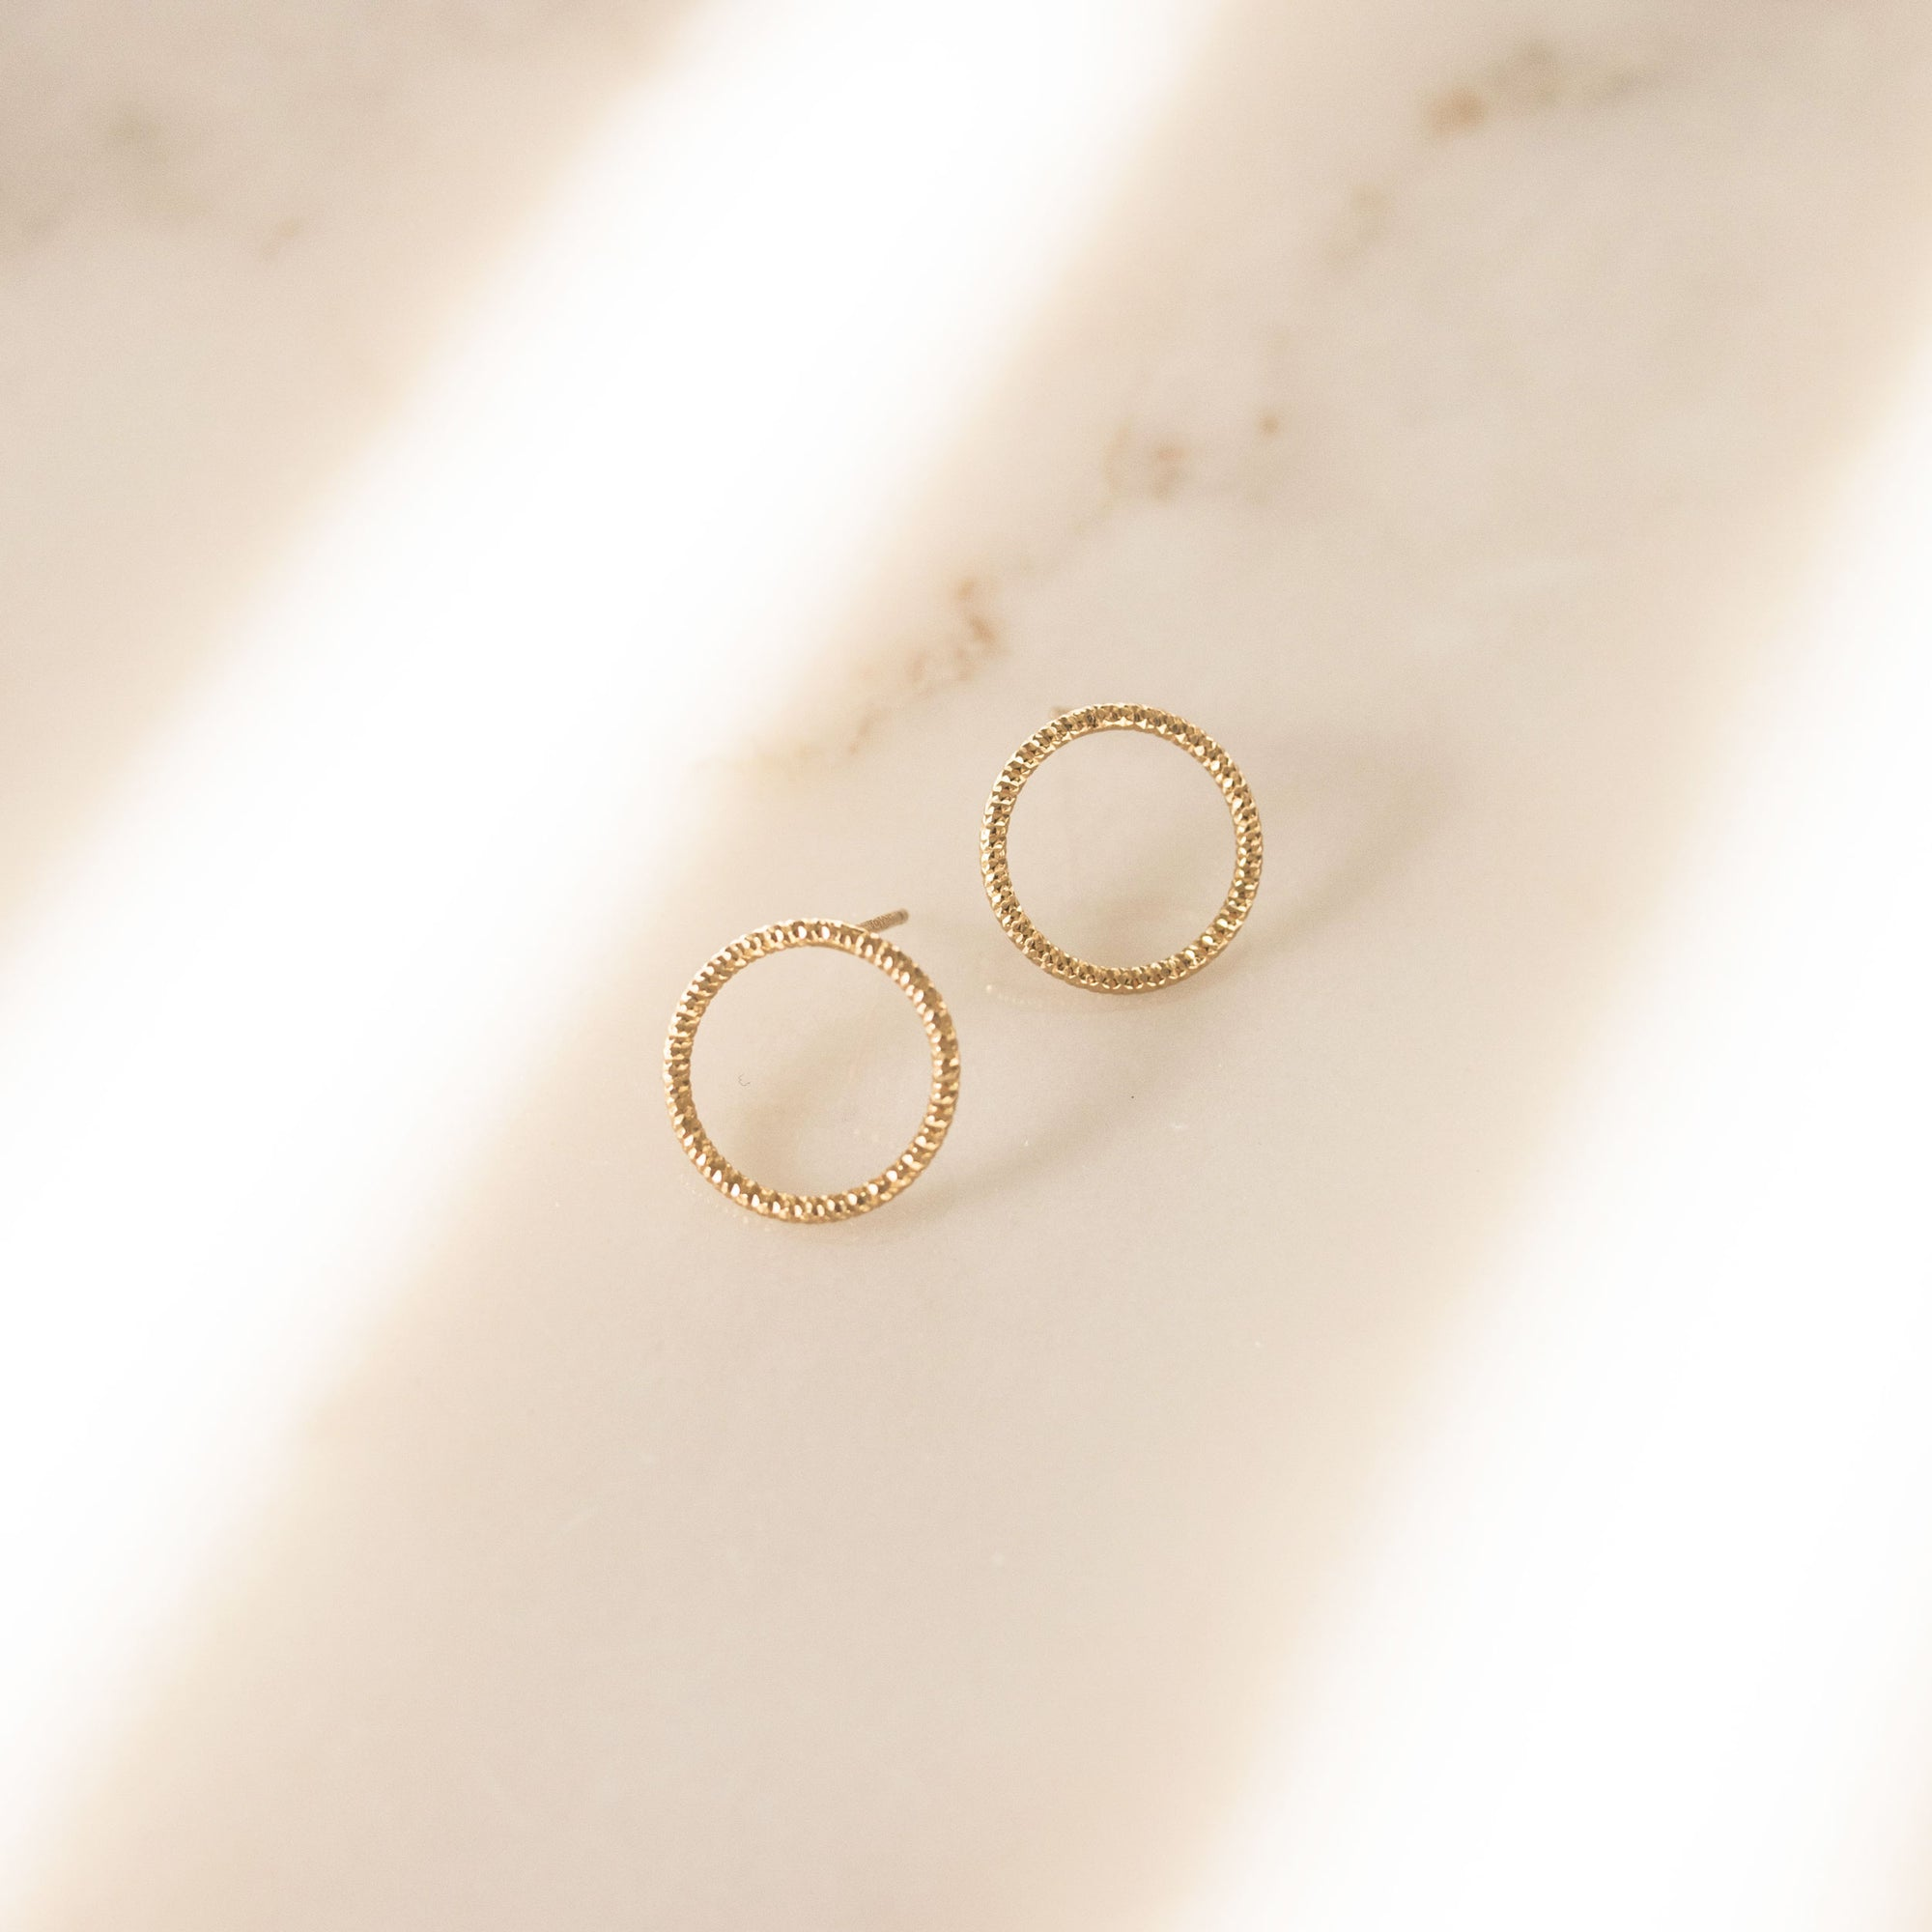 The Circle Small Earrings